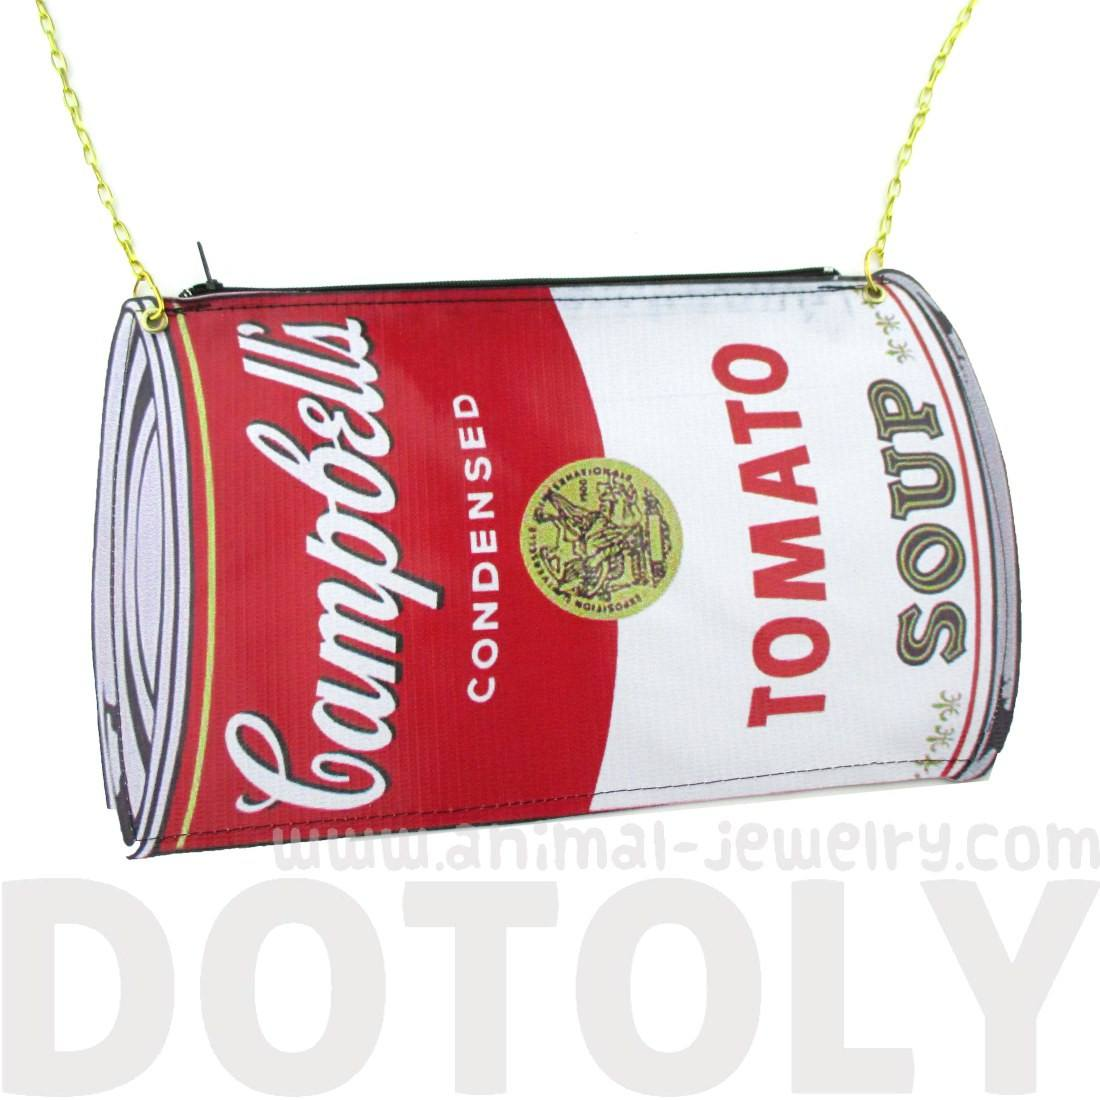 Warhol Campbell's Tomato Soup Shaped Vinyl xBody Bag